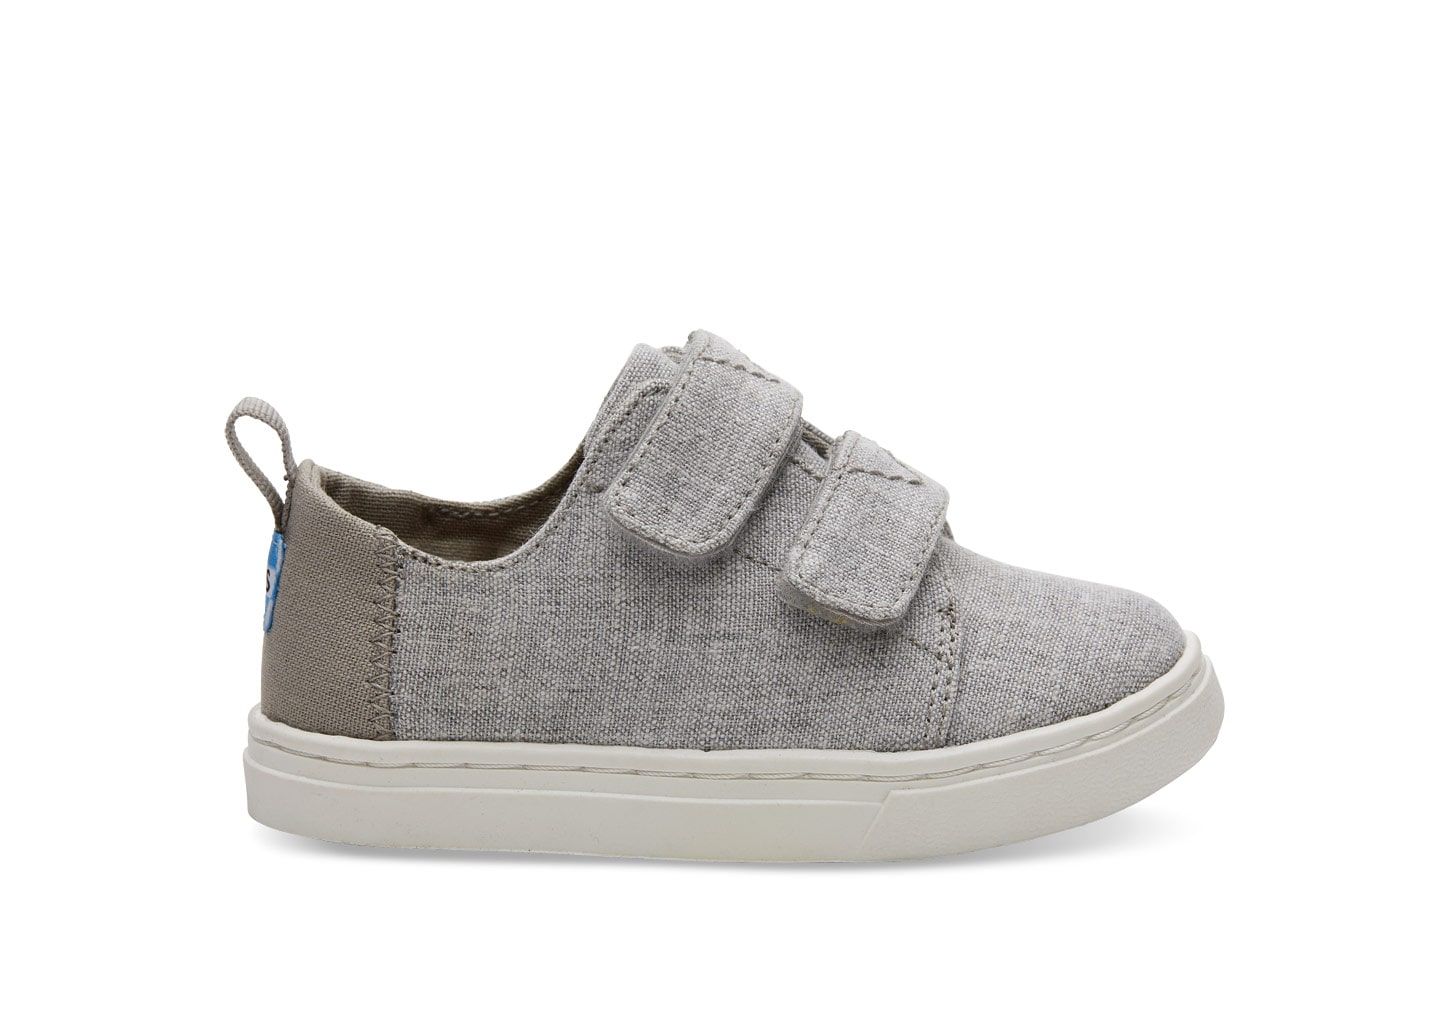 Tiny TOMS Lenny Sneakers - Drizzle Grey